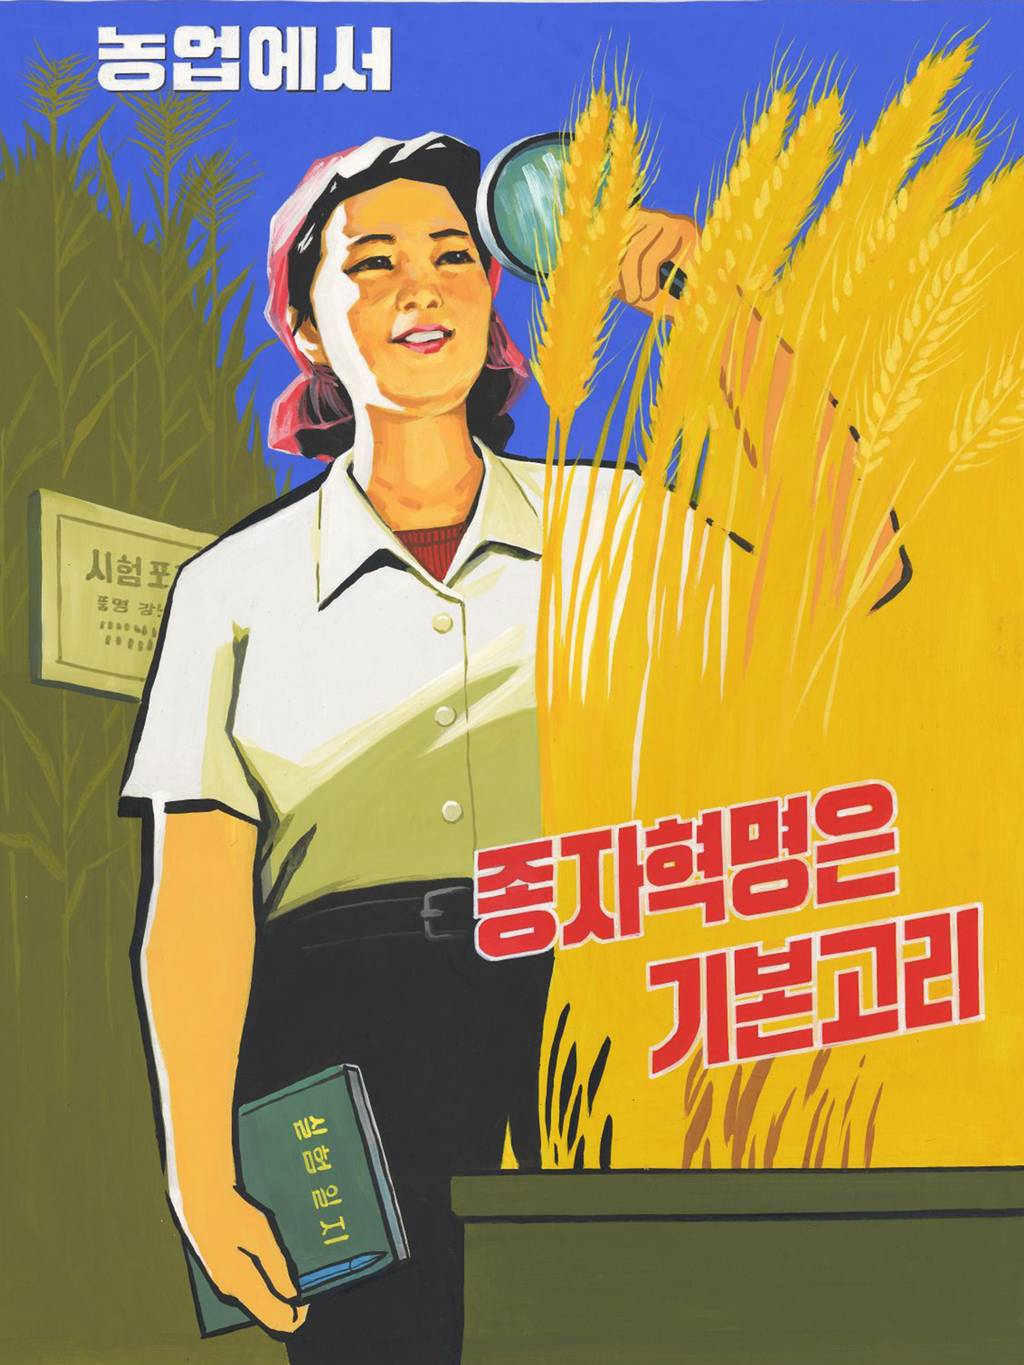 Rare North Korea Propoganda Posters Go On Display For First Time m7csQ3zKBnk poster 1.jpg